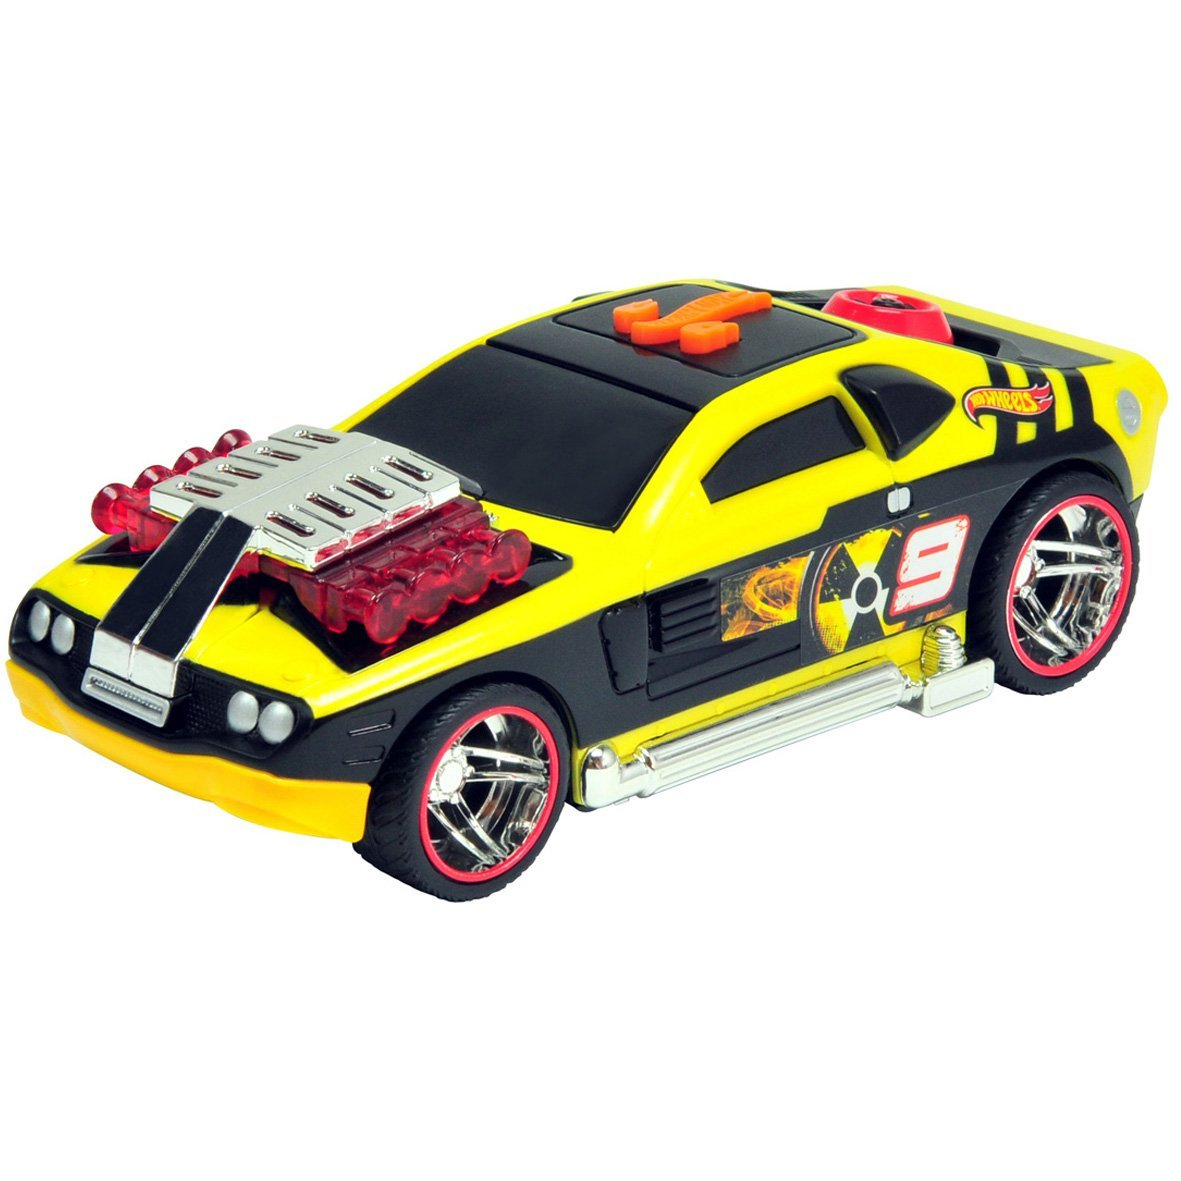 90600TS 03+ HOT WHEELS HOT WHEELS Машина 14 см (свет+звук) в асс.